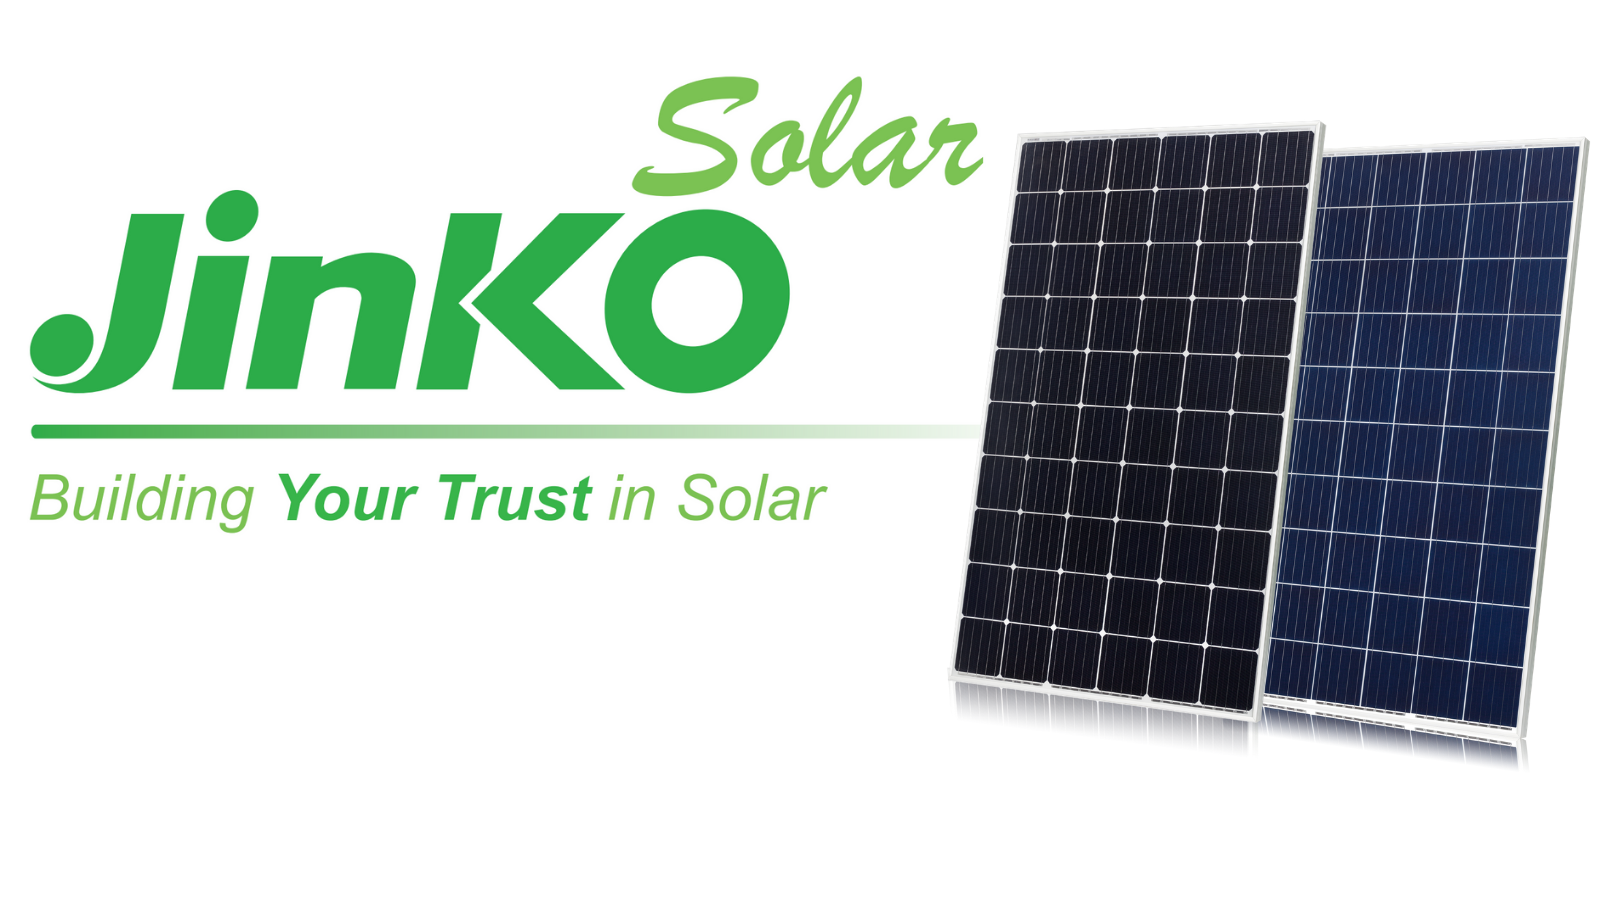 Jinko solar panels review banner image and logo